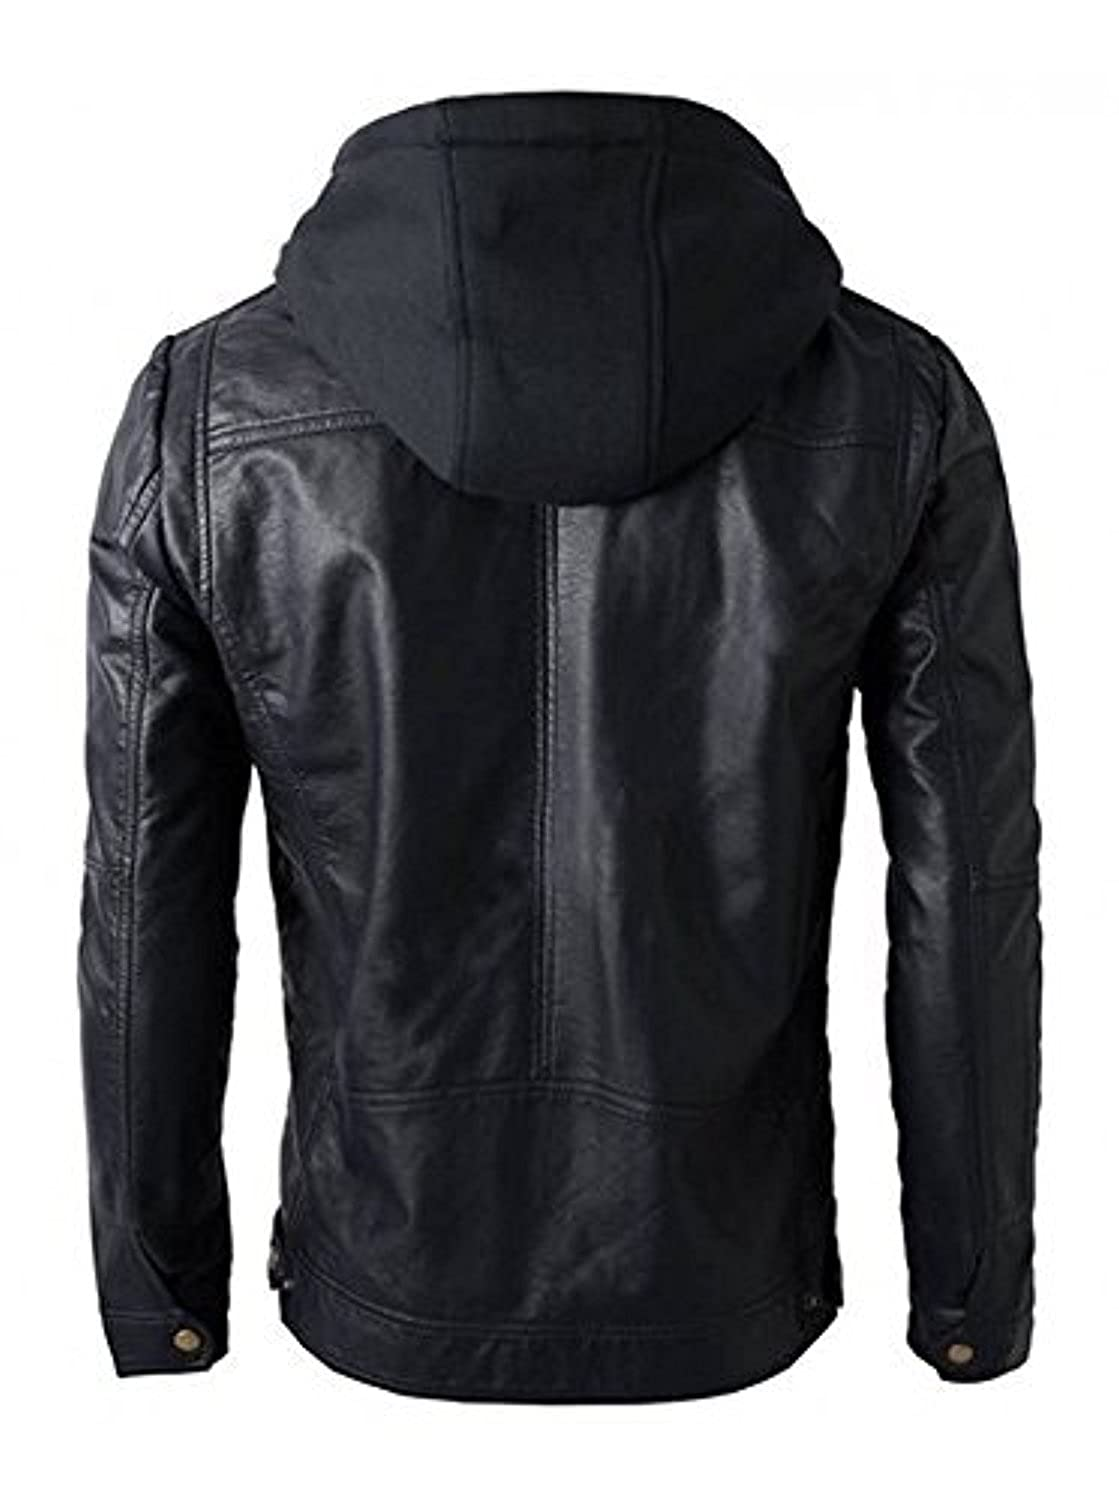 025bf75f745e SID Military Grade Men's Motorcycle Brando Style Biker Real Leather Hoodie  Jacket - Detachable Hood - Black - Large: Amazon.co.uk: Clothing